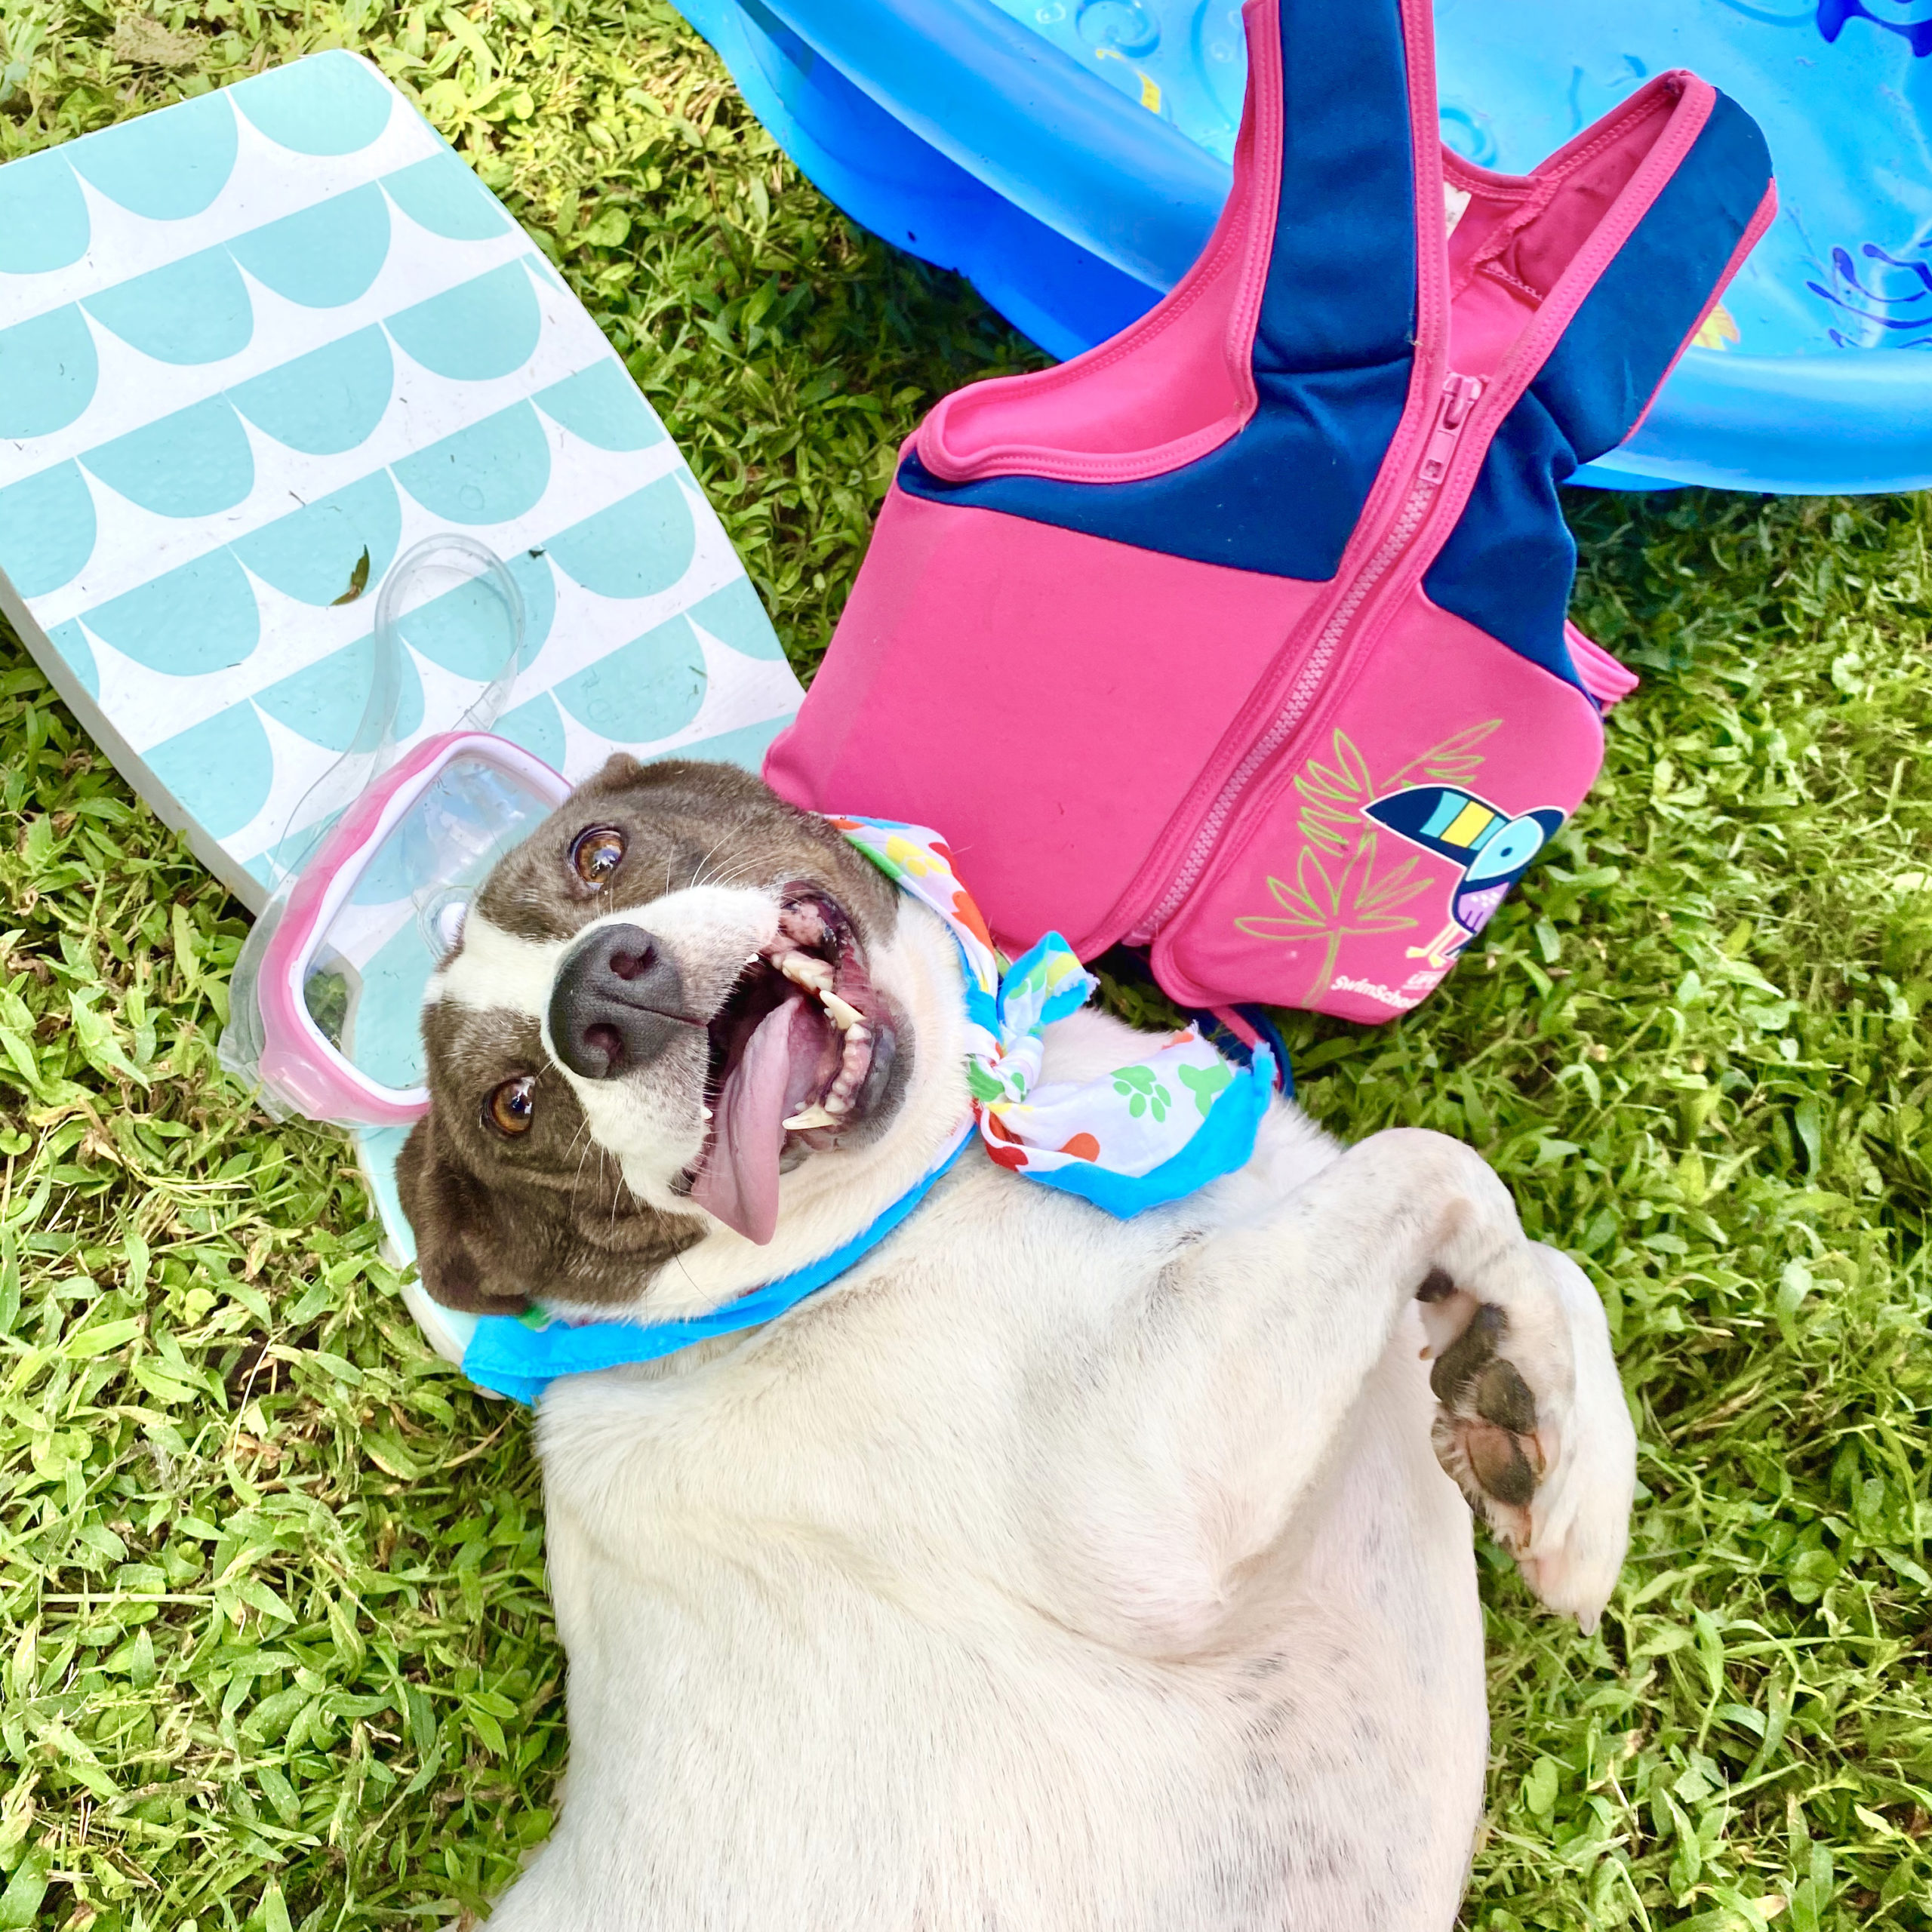 10th Annual Dog Paddle Pool Party going VIRTUAL August 24-29